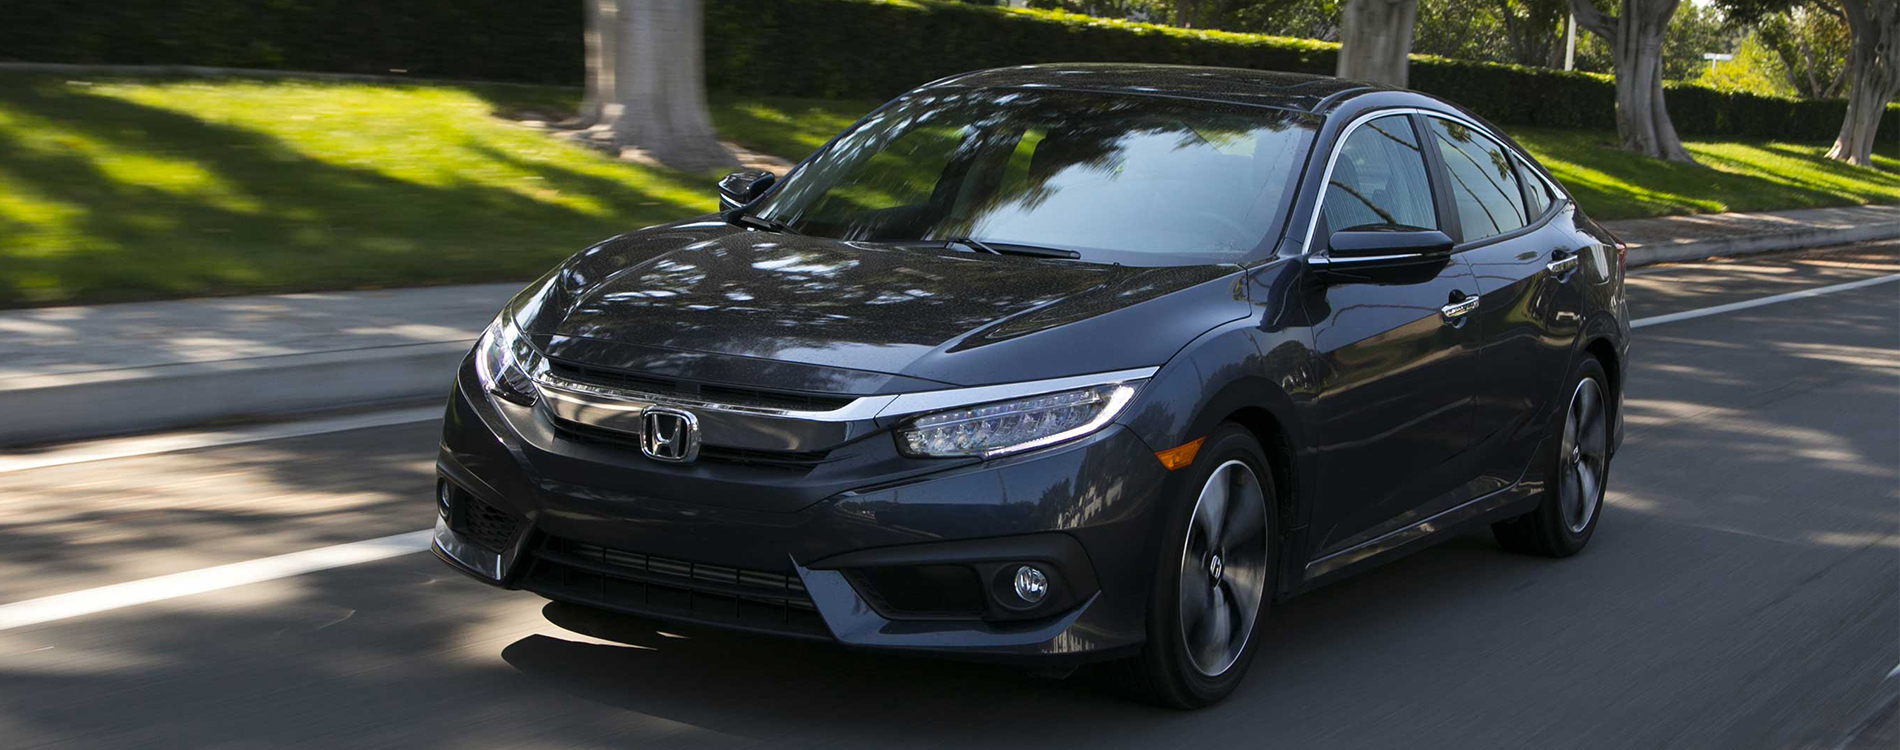 Kelley Blue Book Announces Winners Of 2017 Best Awards Honda Civic Repeats Win As Overall The Year